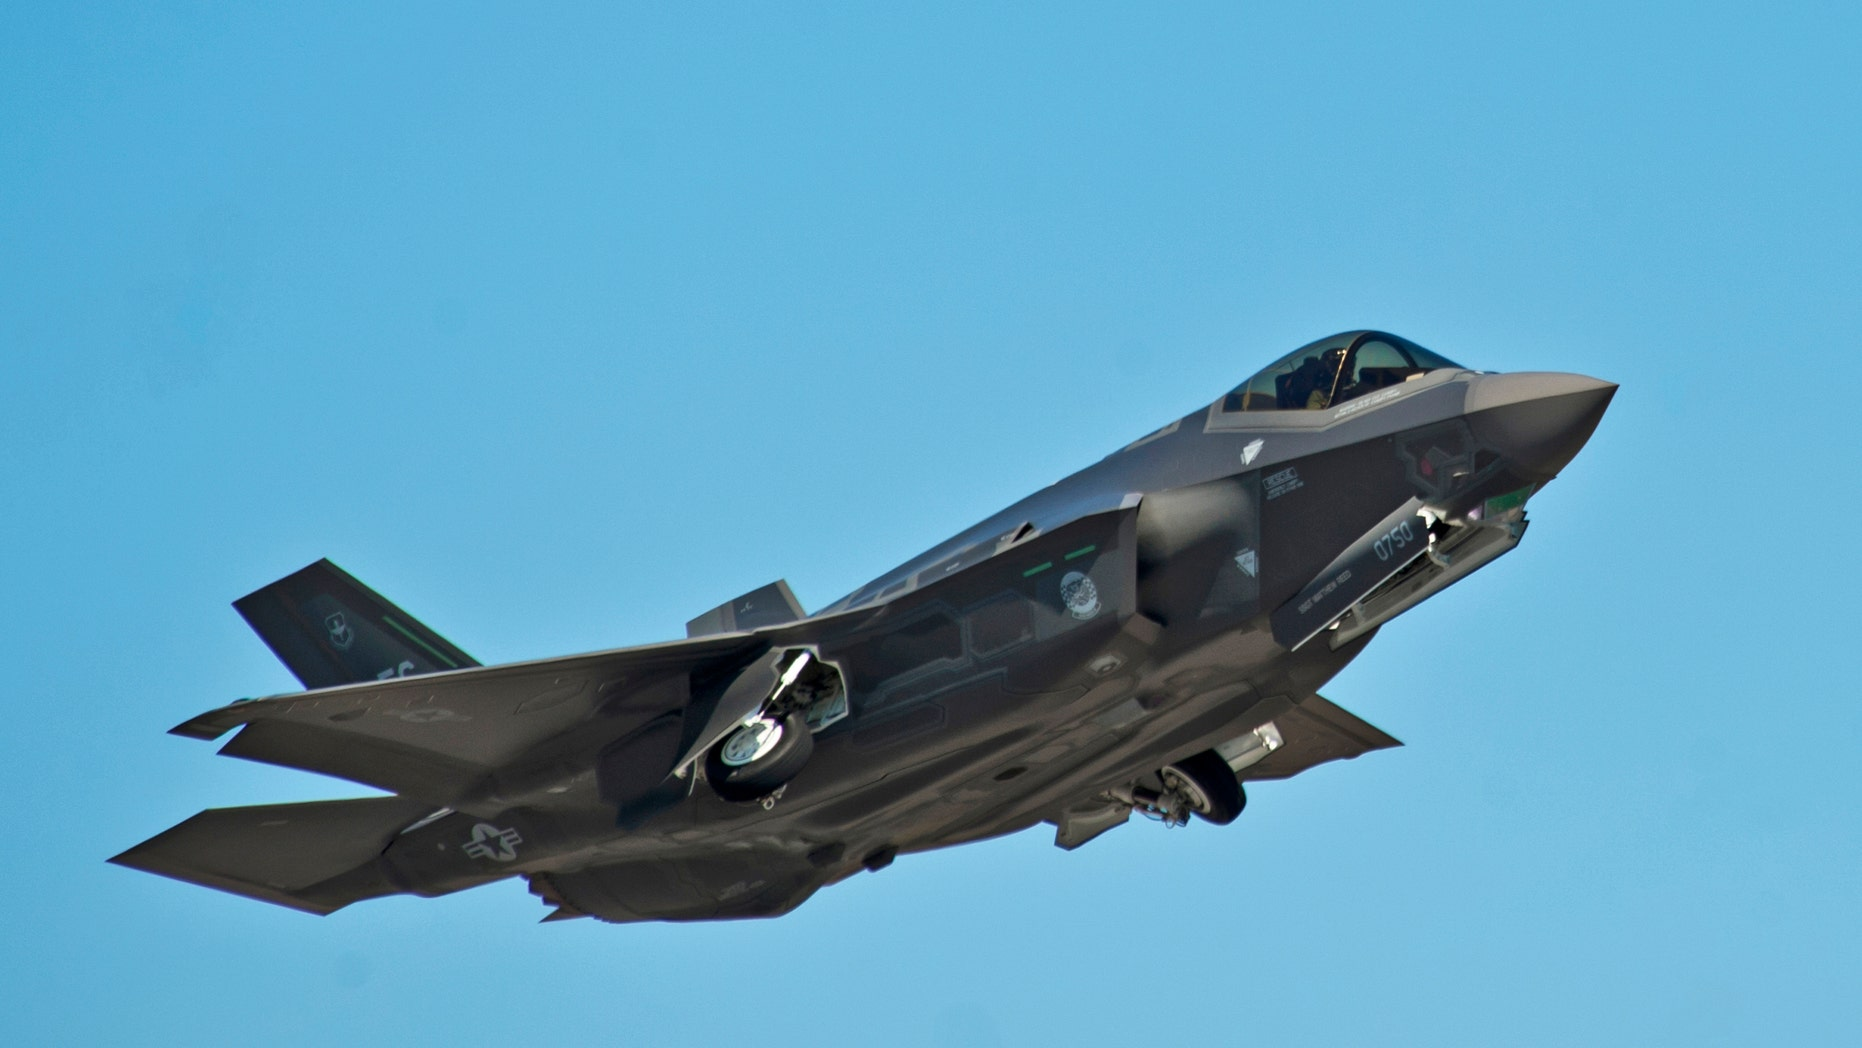 File photo - An F-35A Lightning II Joint Strike Fighter takes off on a training sortie at Eglin Air Force Base, Florida in this March 6, 2012 file photo.